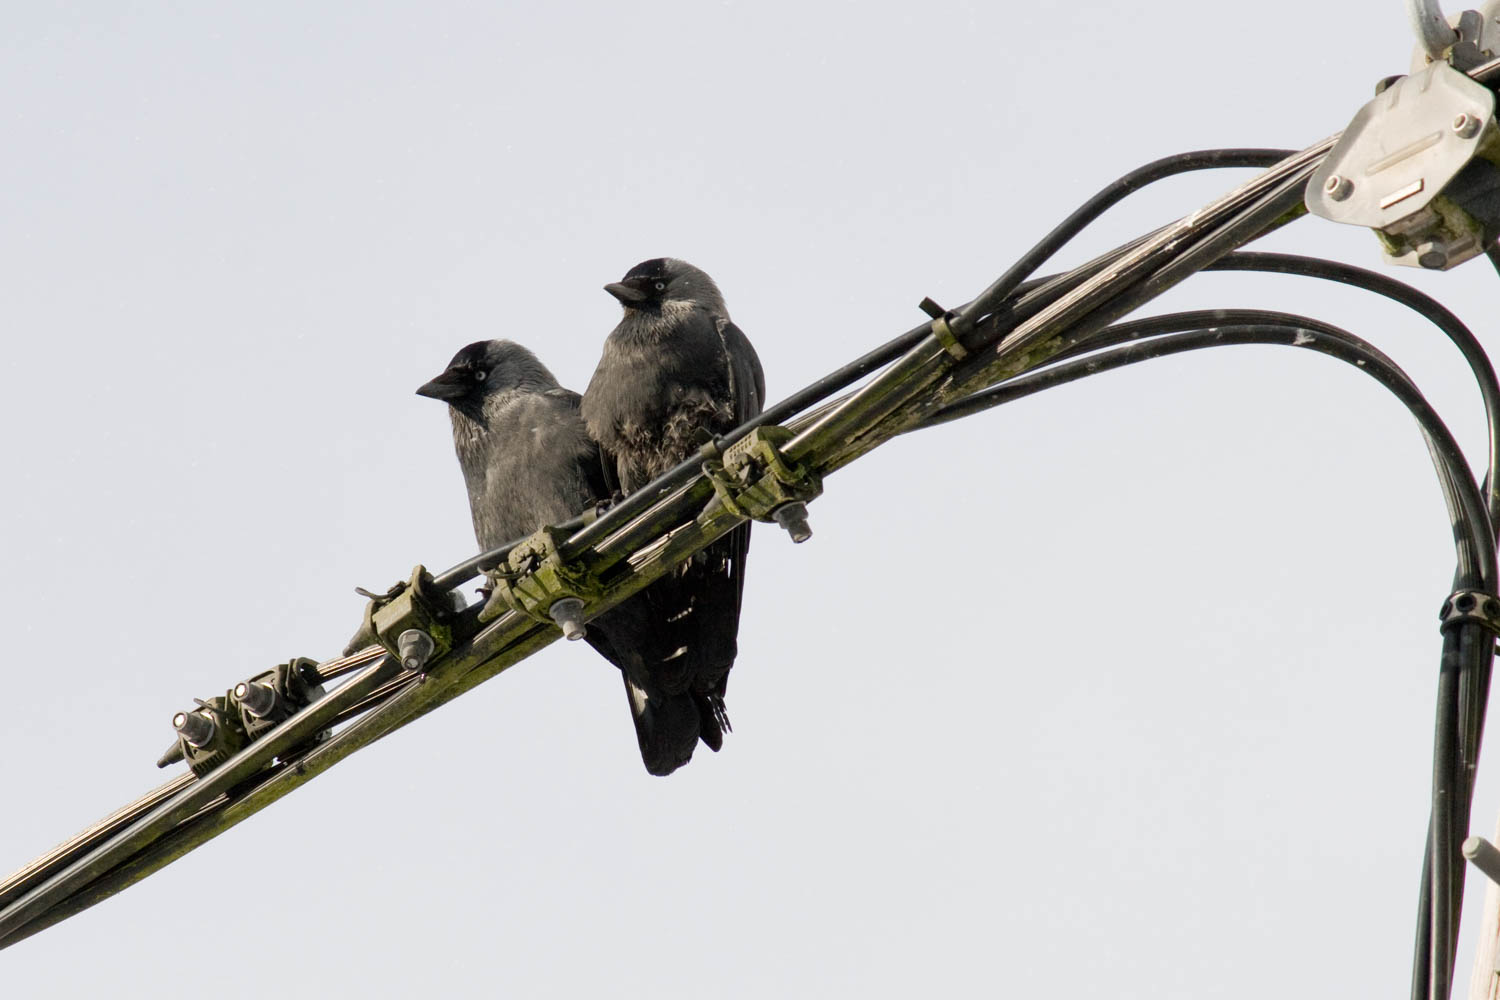 Jackdaws pair off on the overhead electricity wires